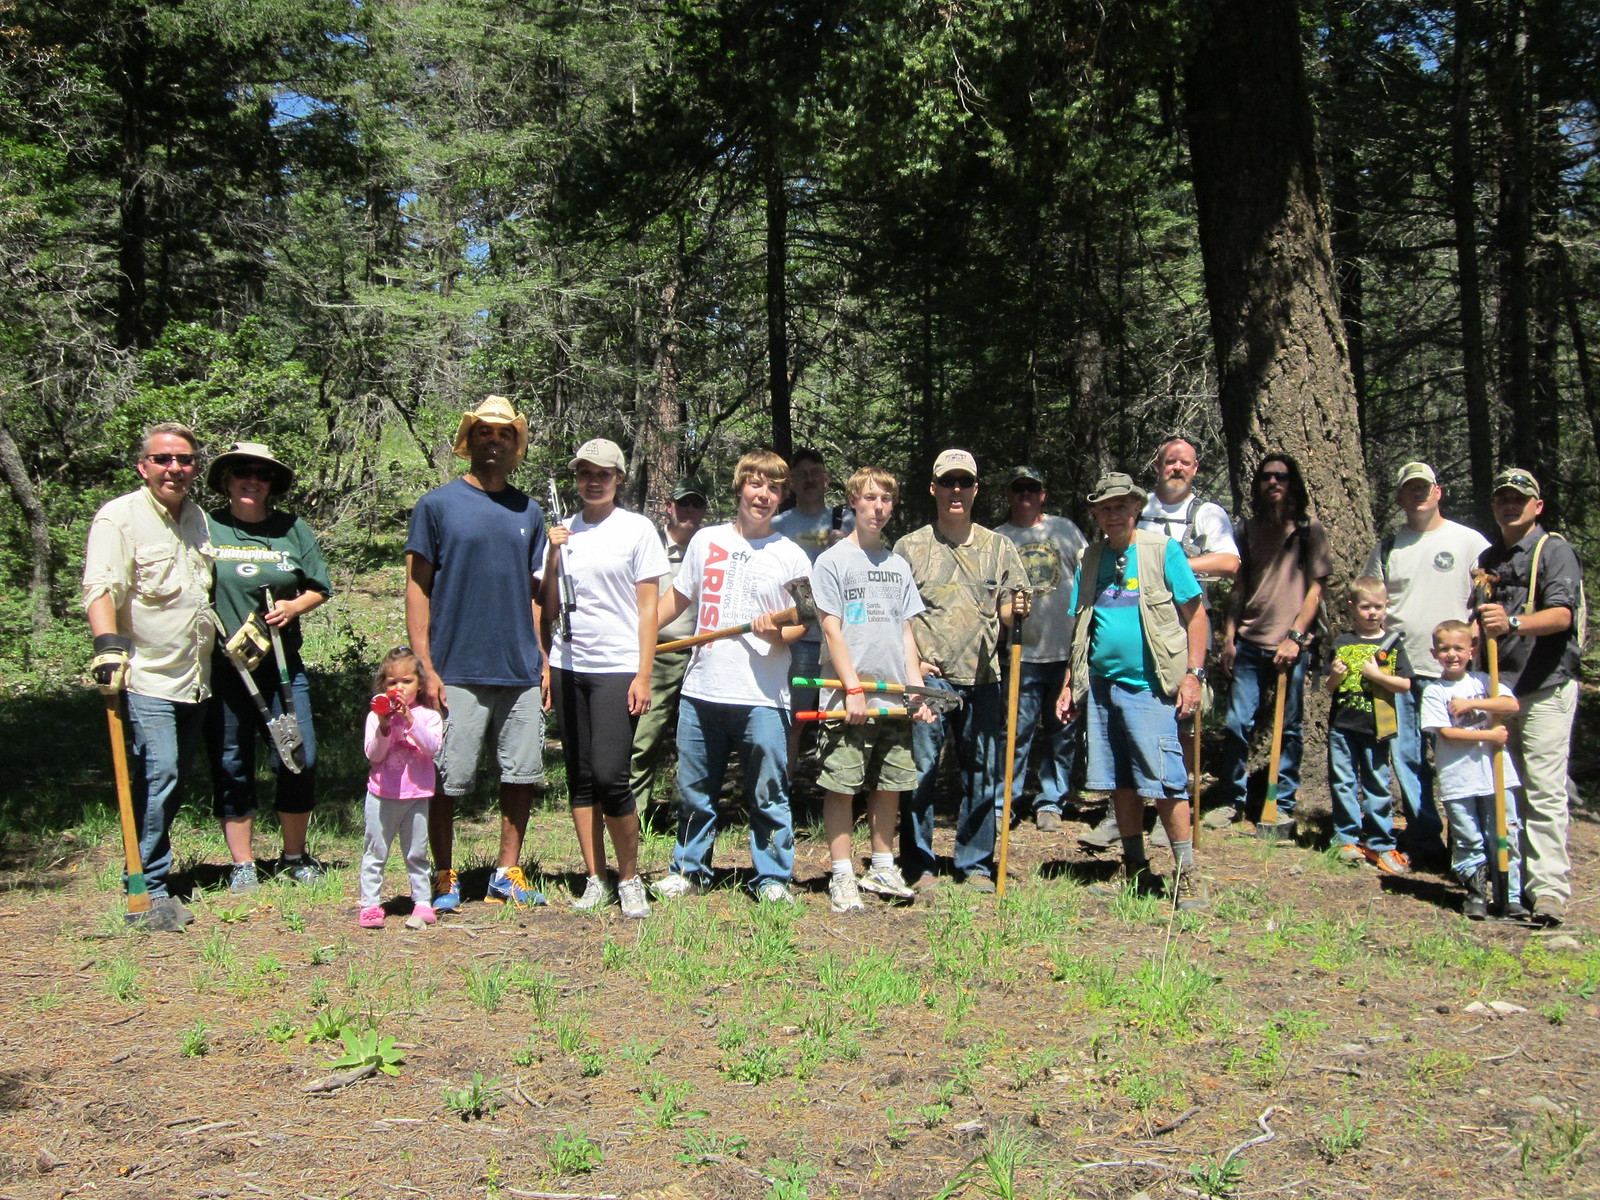 New Mexico Rails-to-Trails volunteers at the Rim Trail